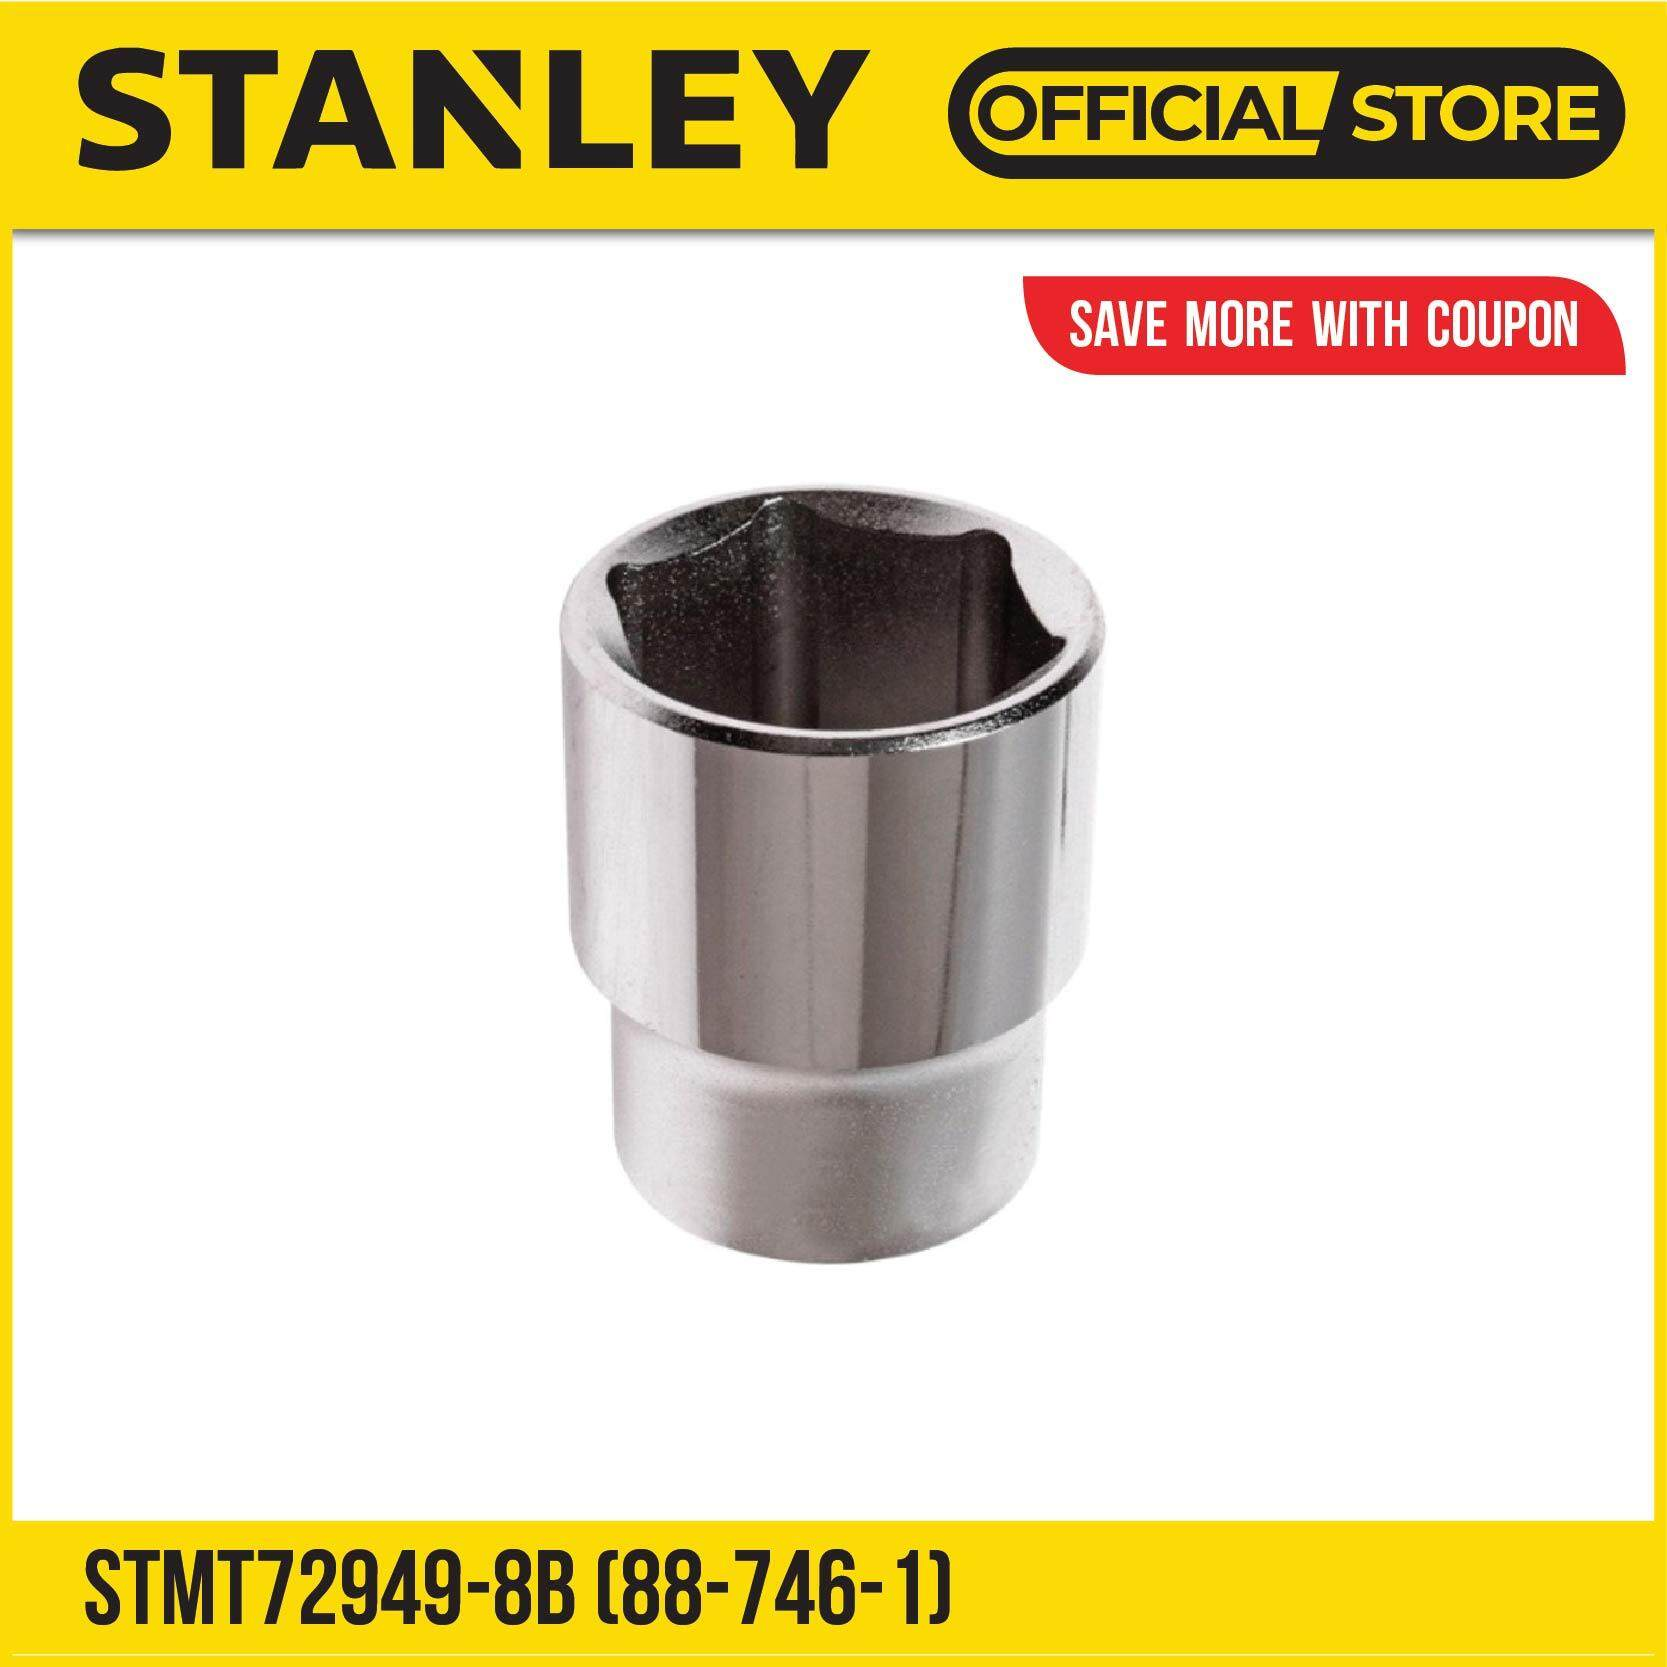 Stanley STMT72949-8B 6 Point Standard Socket-Metric 1/2 Dr 24mm (Silver)